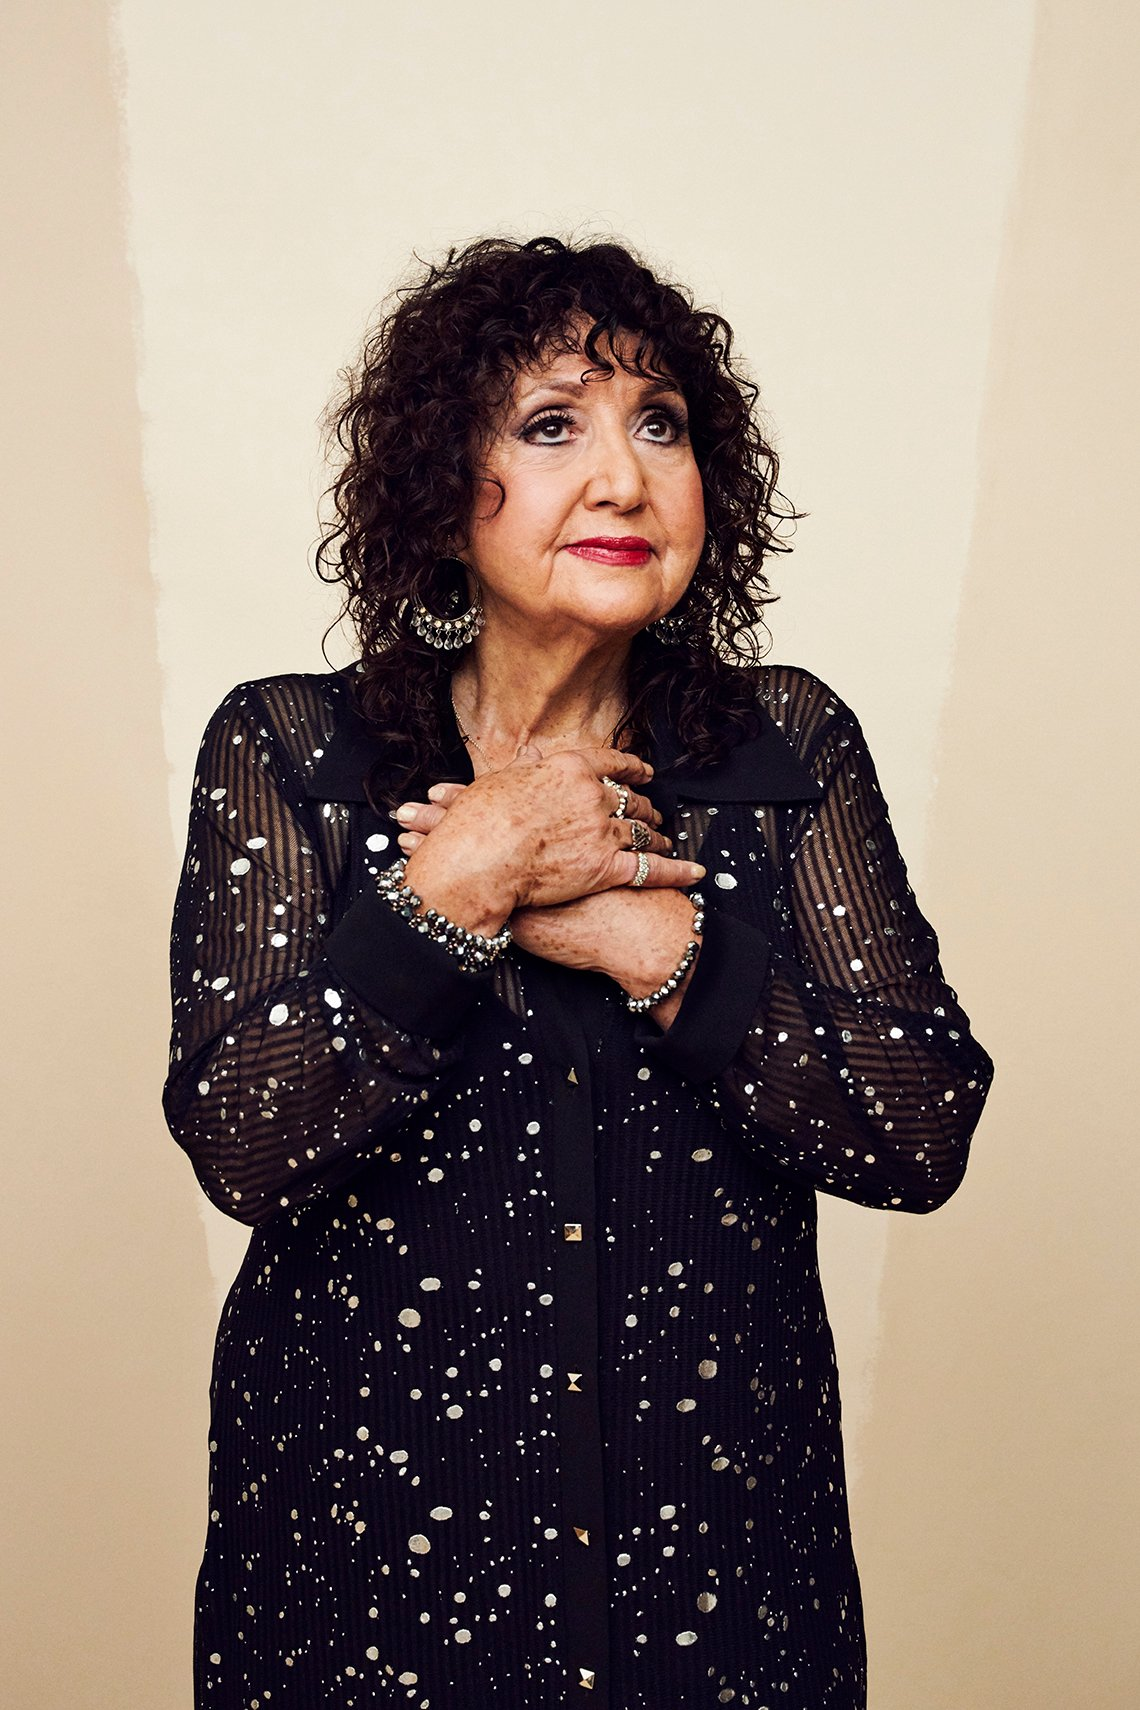 Singer Maria Muldaur with hands across her chest